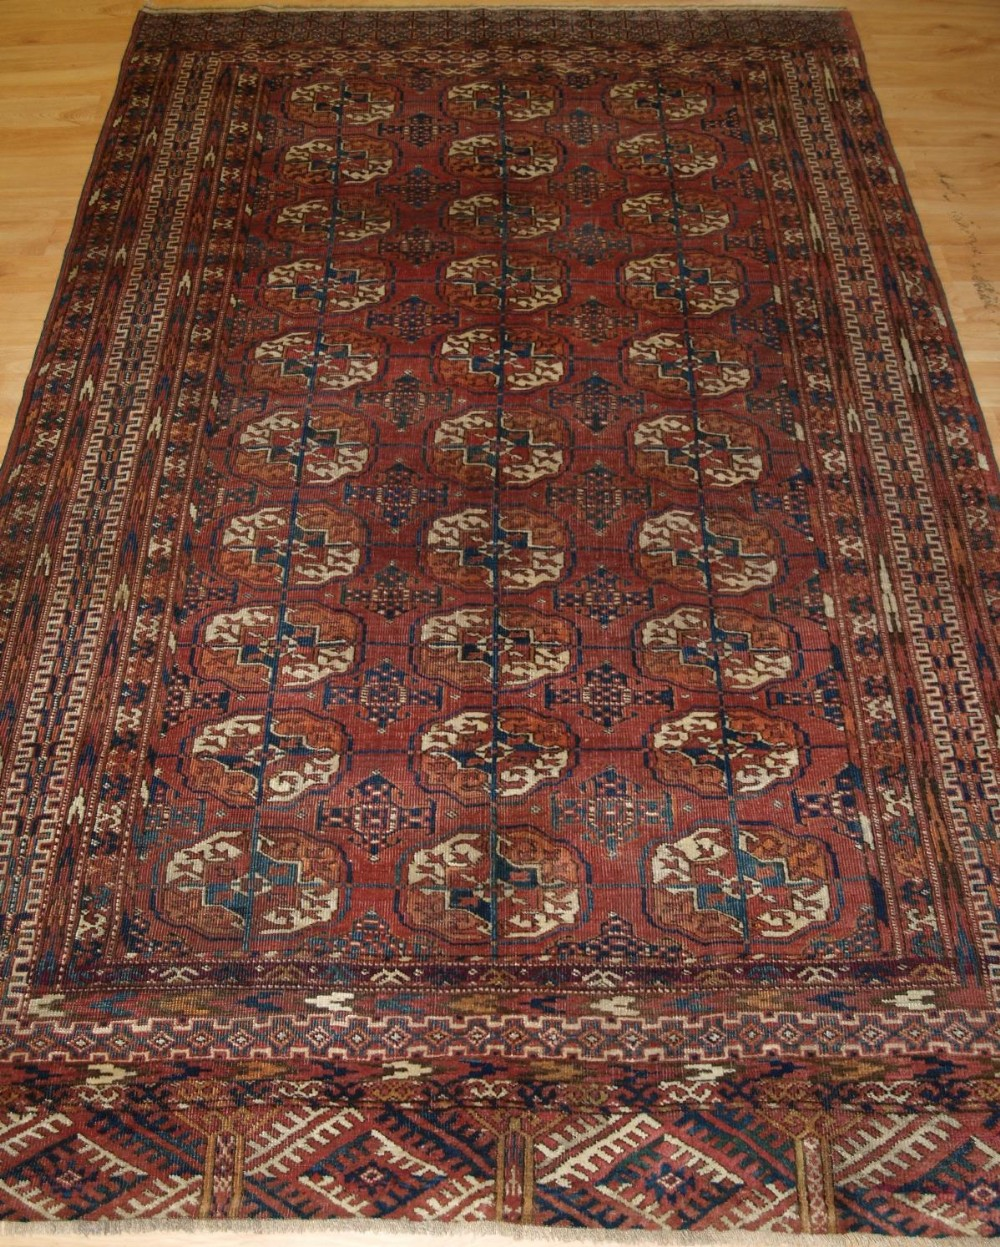 antique tekke turkmen rug well drawn with large guls circa 1900